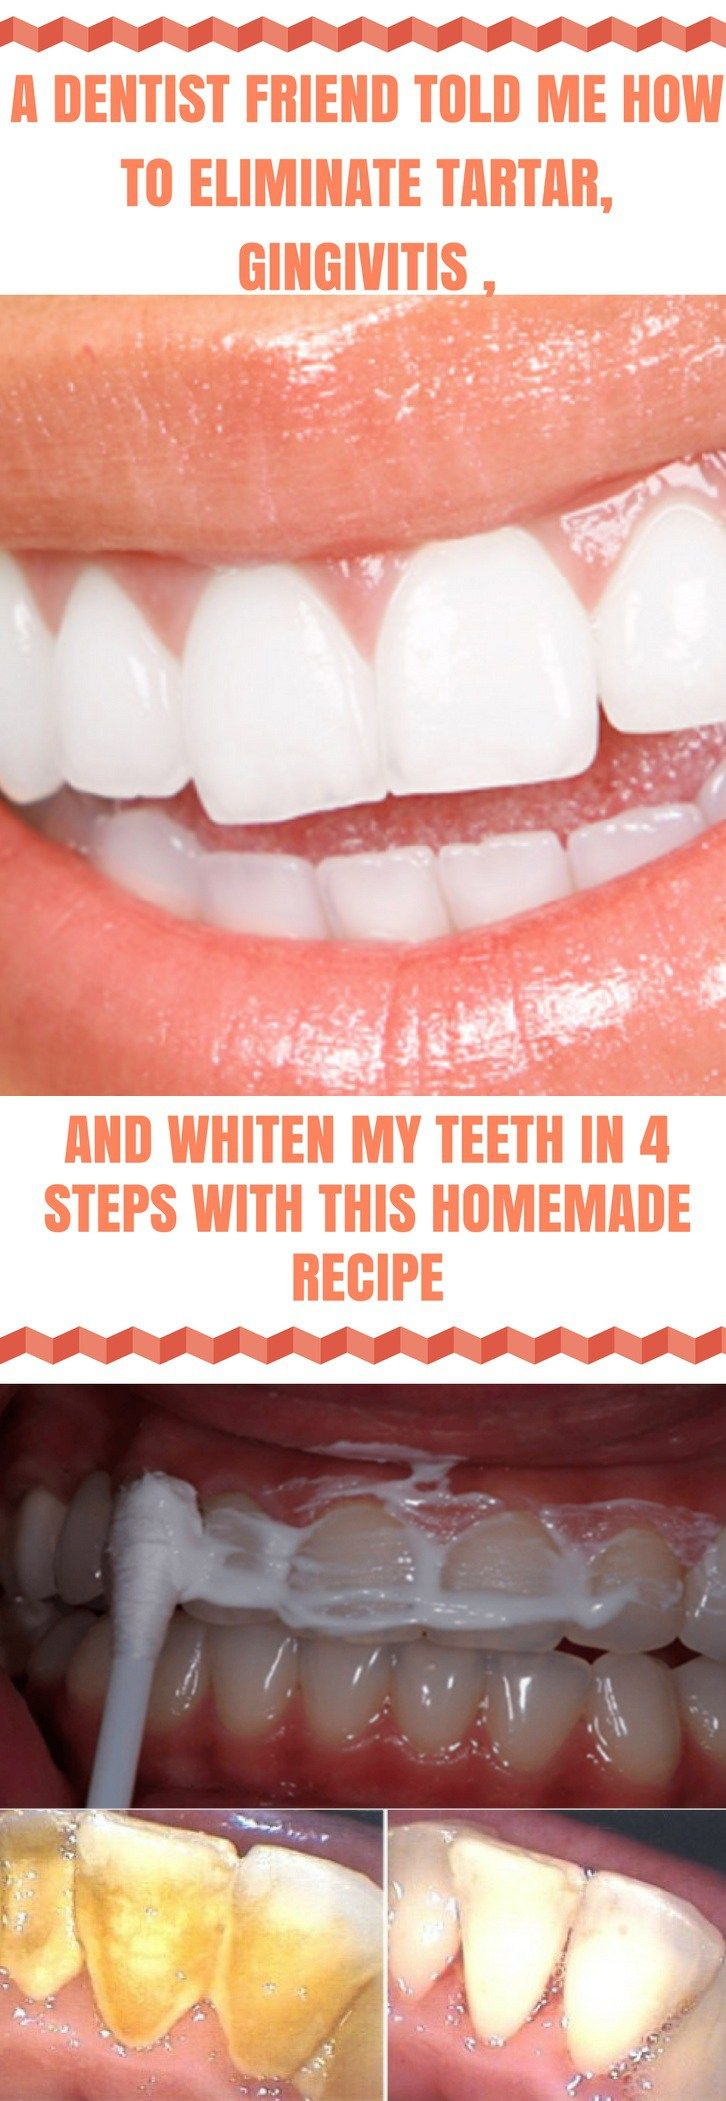 Pin By Crystal Henderson On Skin Care Pinterest Whitening Teeth